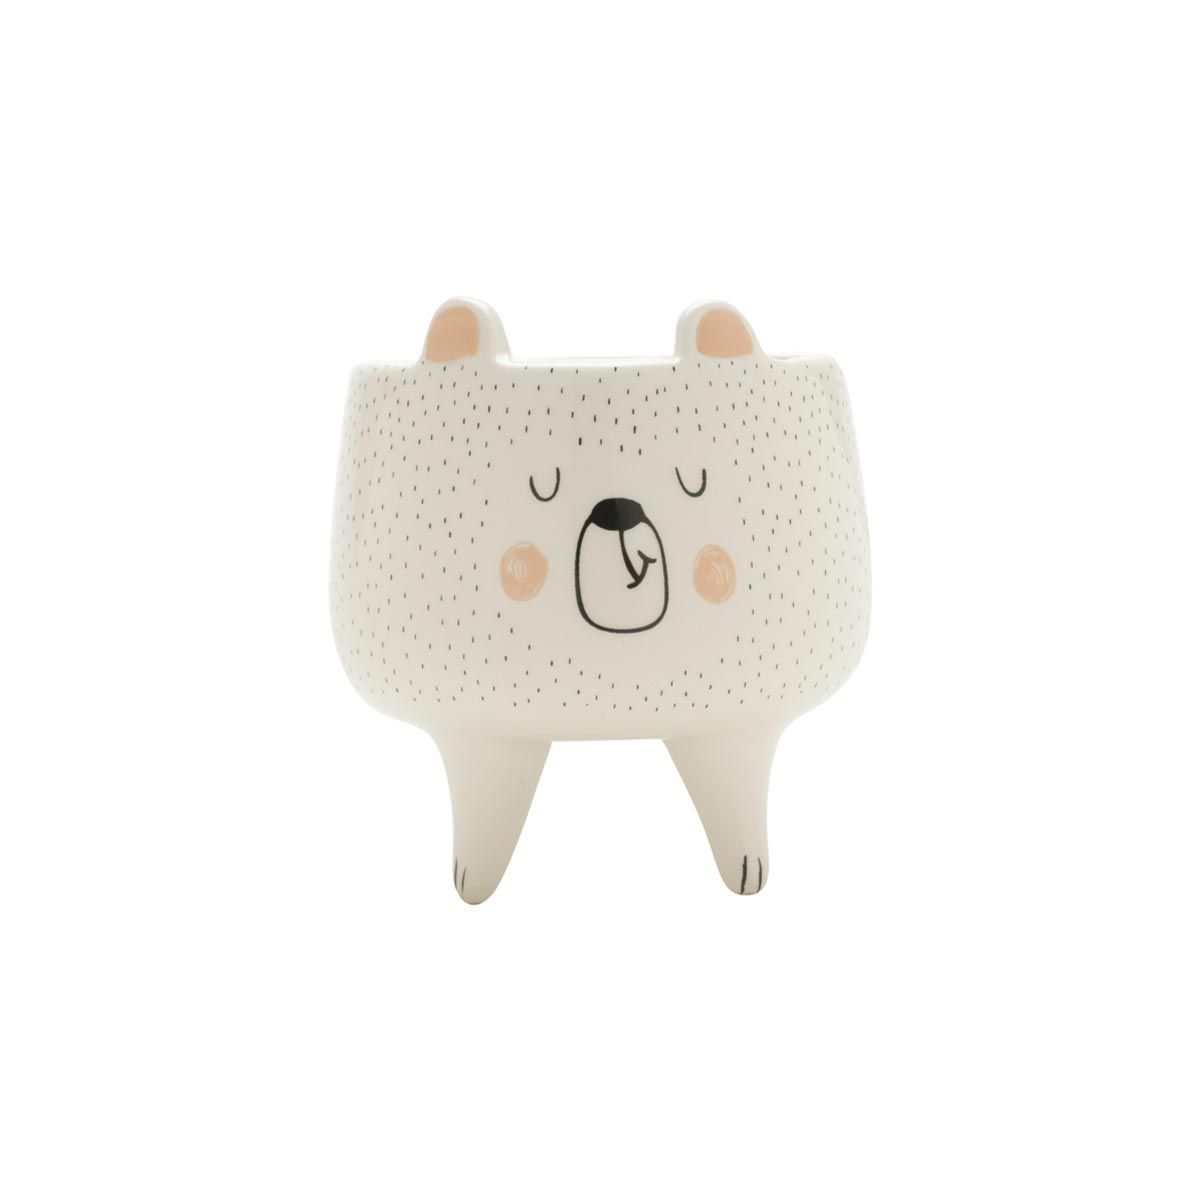 Kit 3 Cachepots Pequenos Vaso Sleeping Bear Fox e Owl - Urso Raposa e Coruja